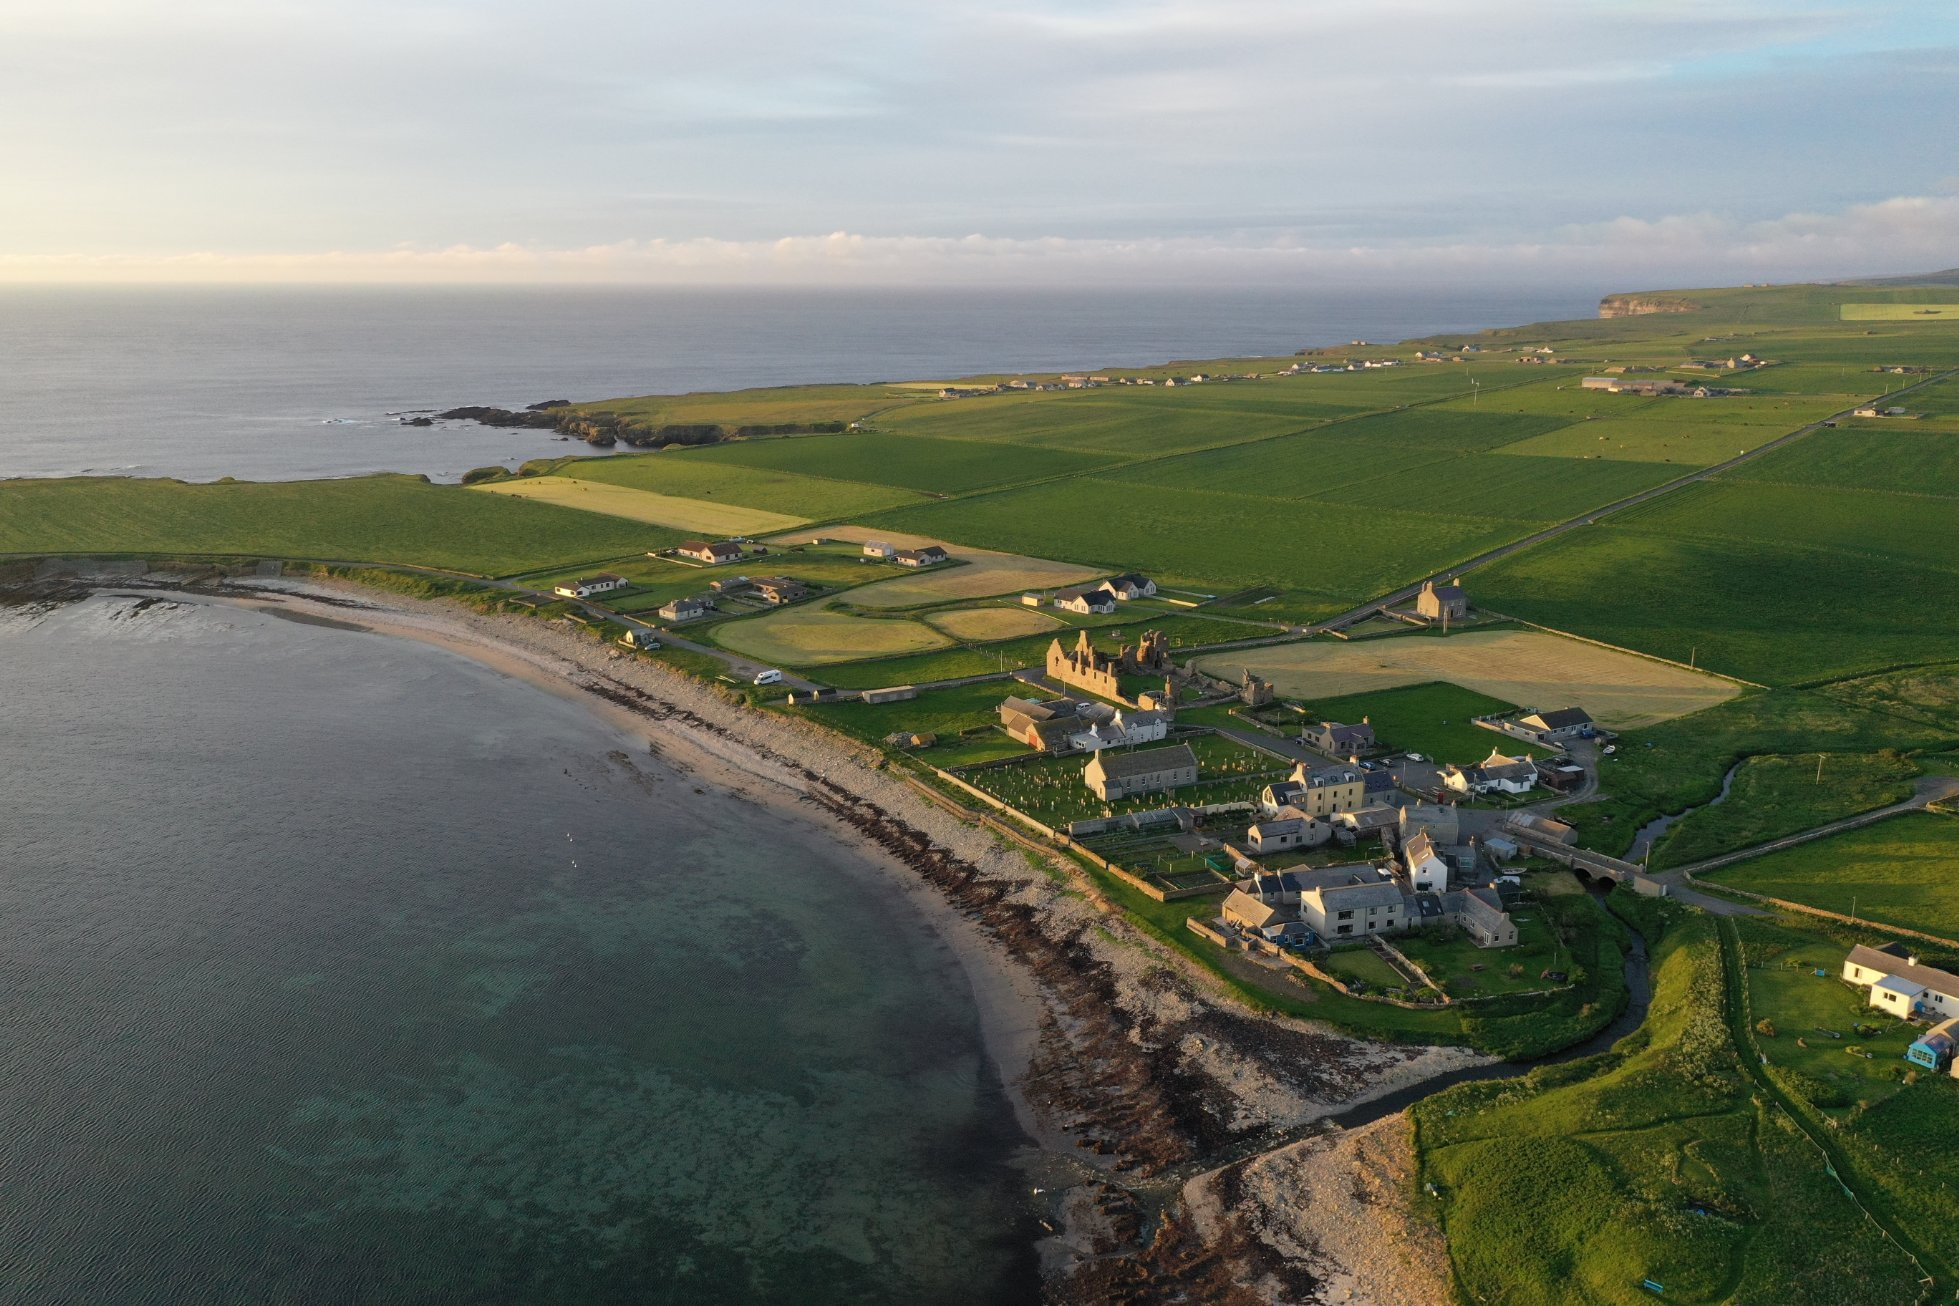 Aerial view of Birsay village and the Earl's Palace, Orkney - image by Colin Keldie